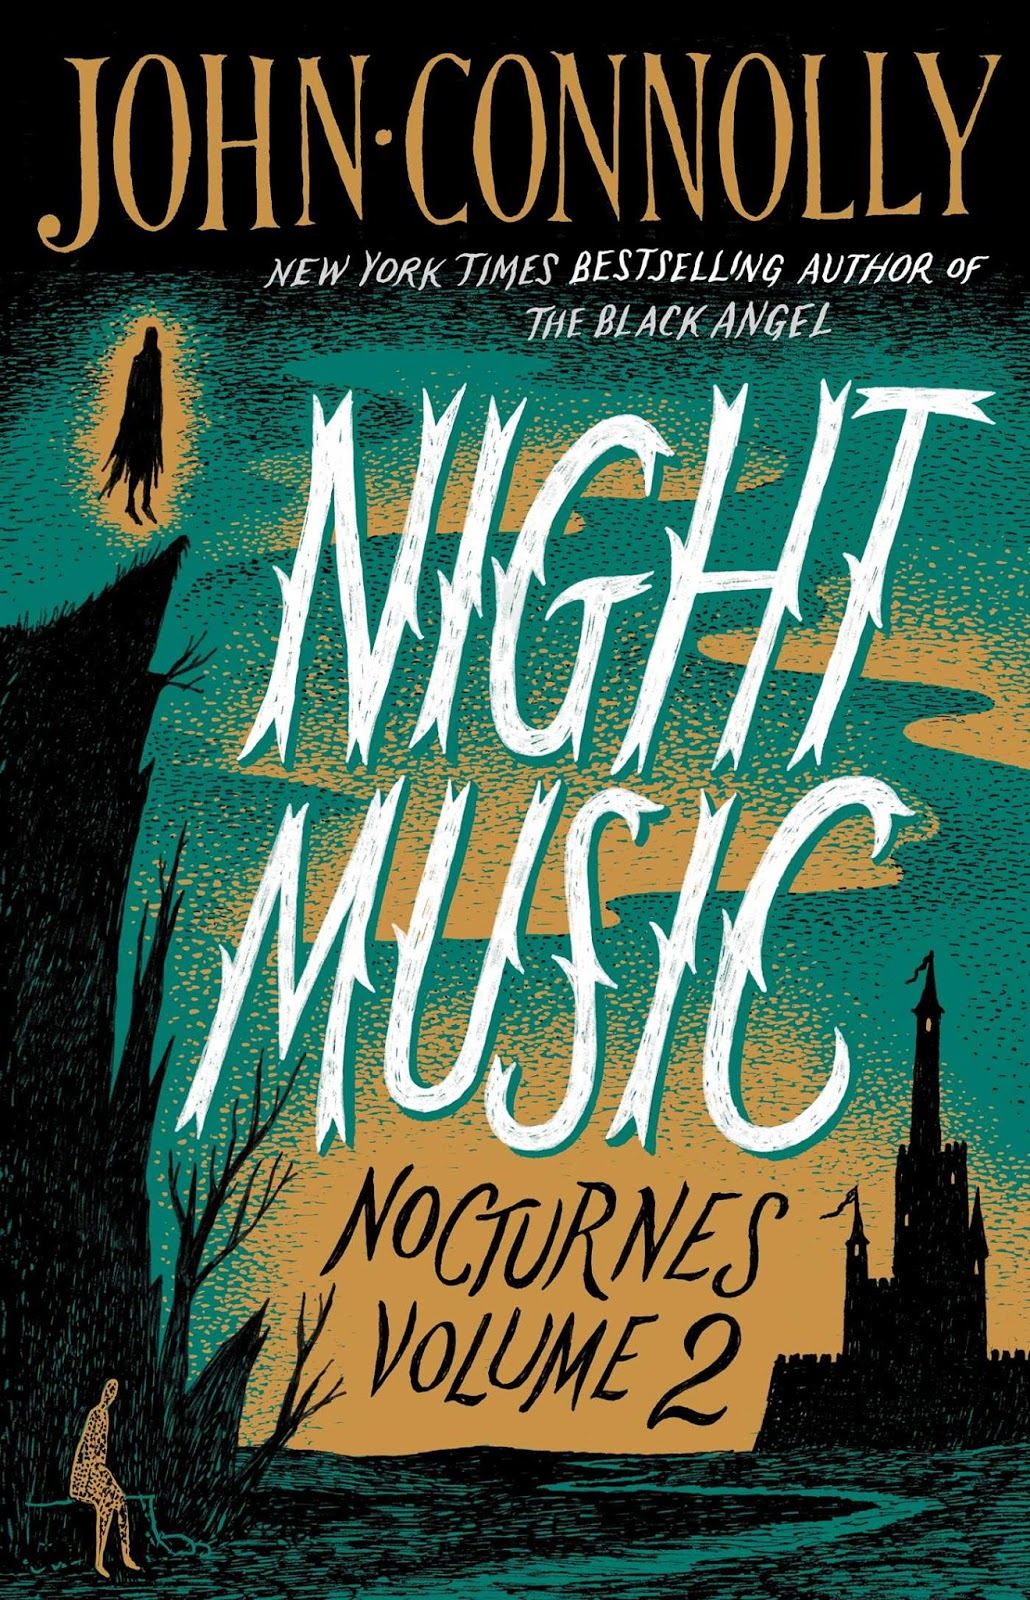 and another thing   : The NIGHT MUSIC Art Competition